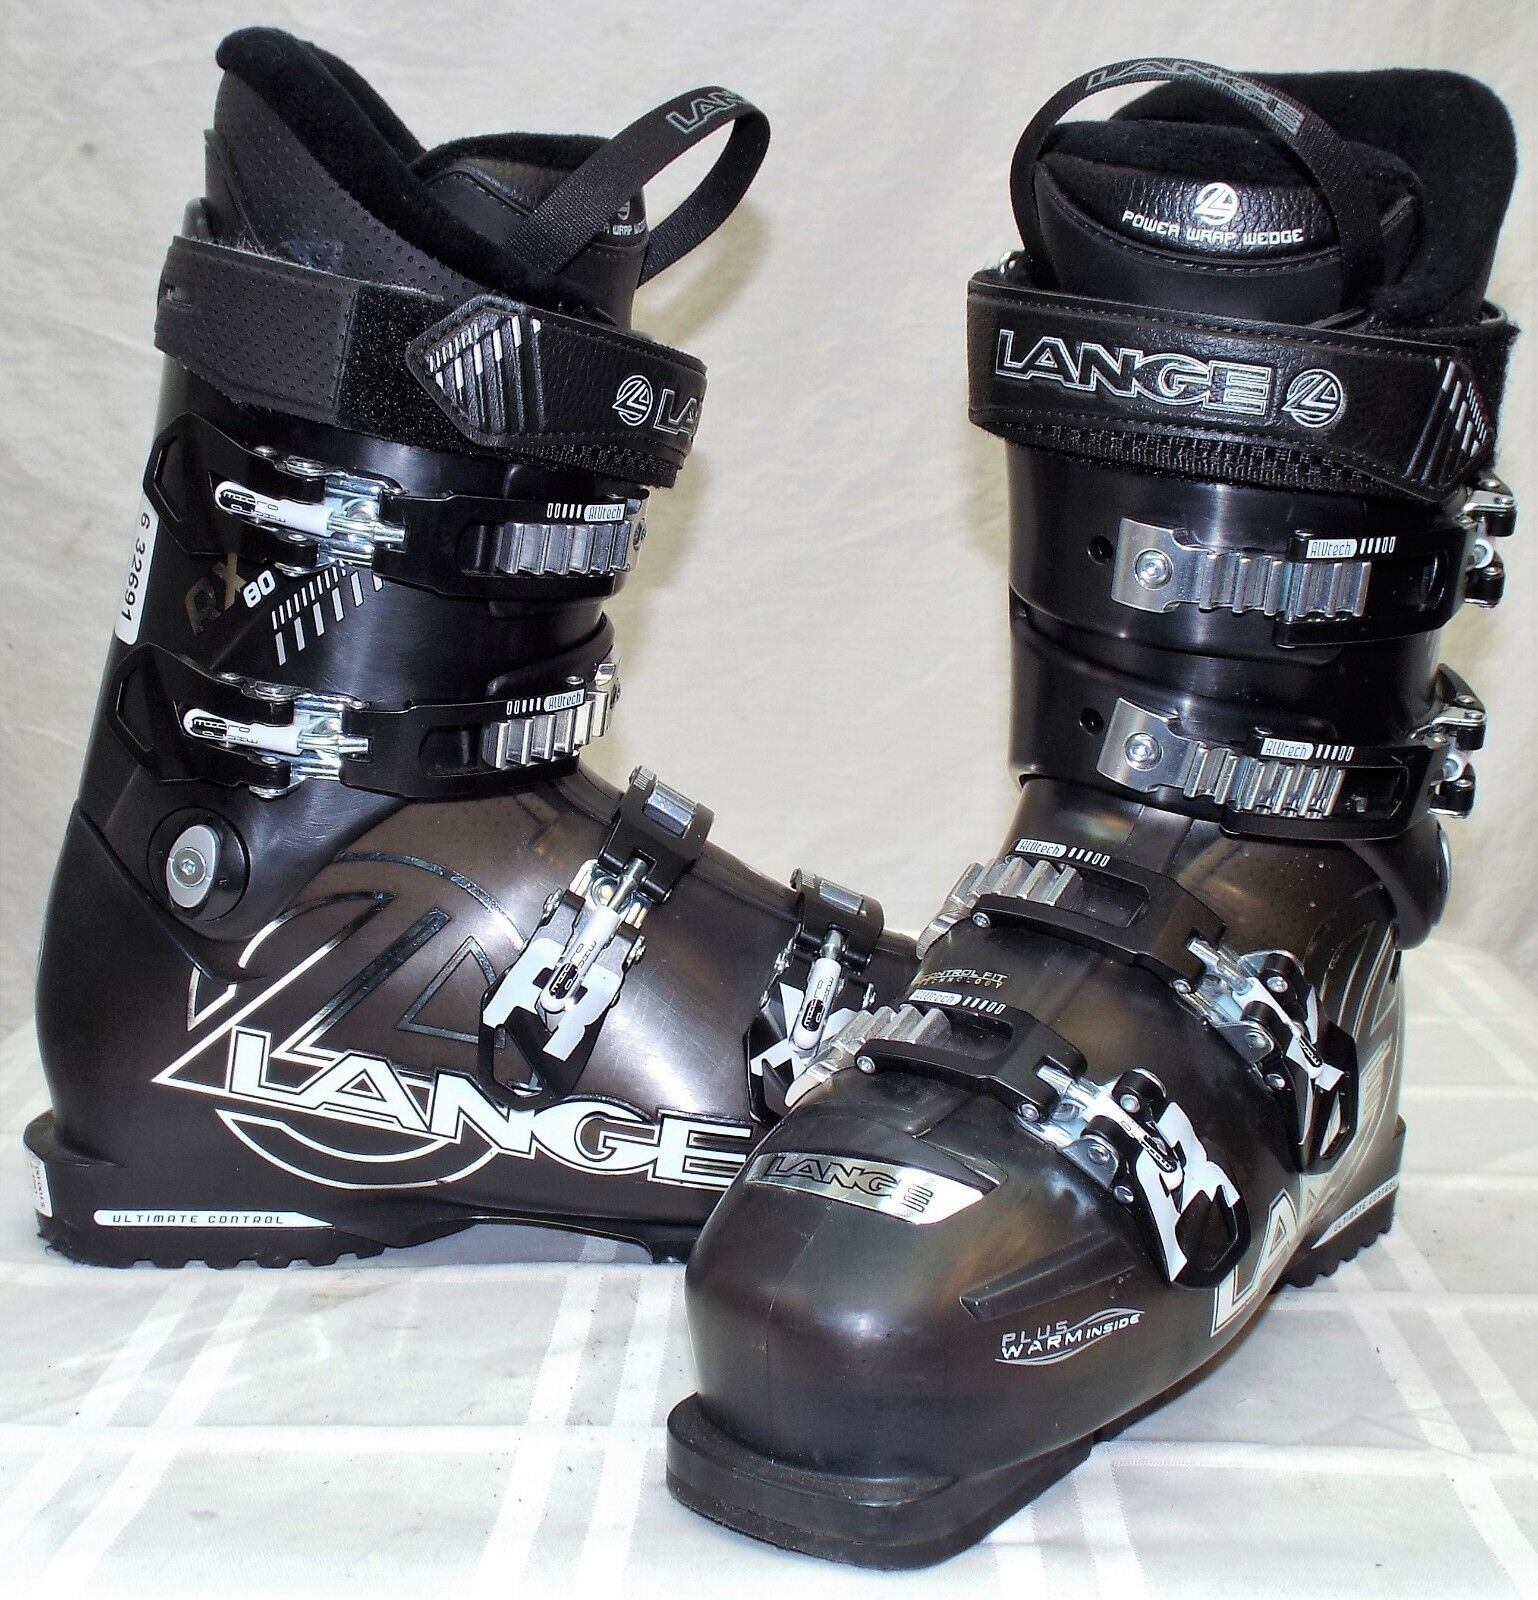 Lange RX 80 Used Women's Ski Boots  Size 25.5  up to 50% off